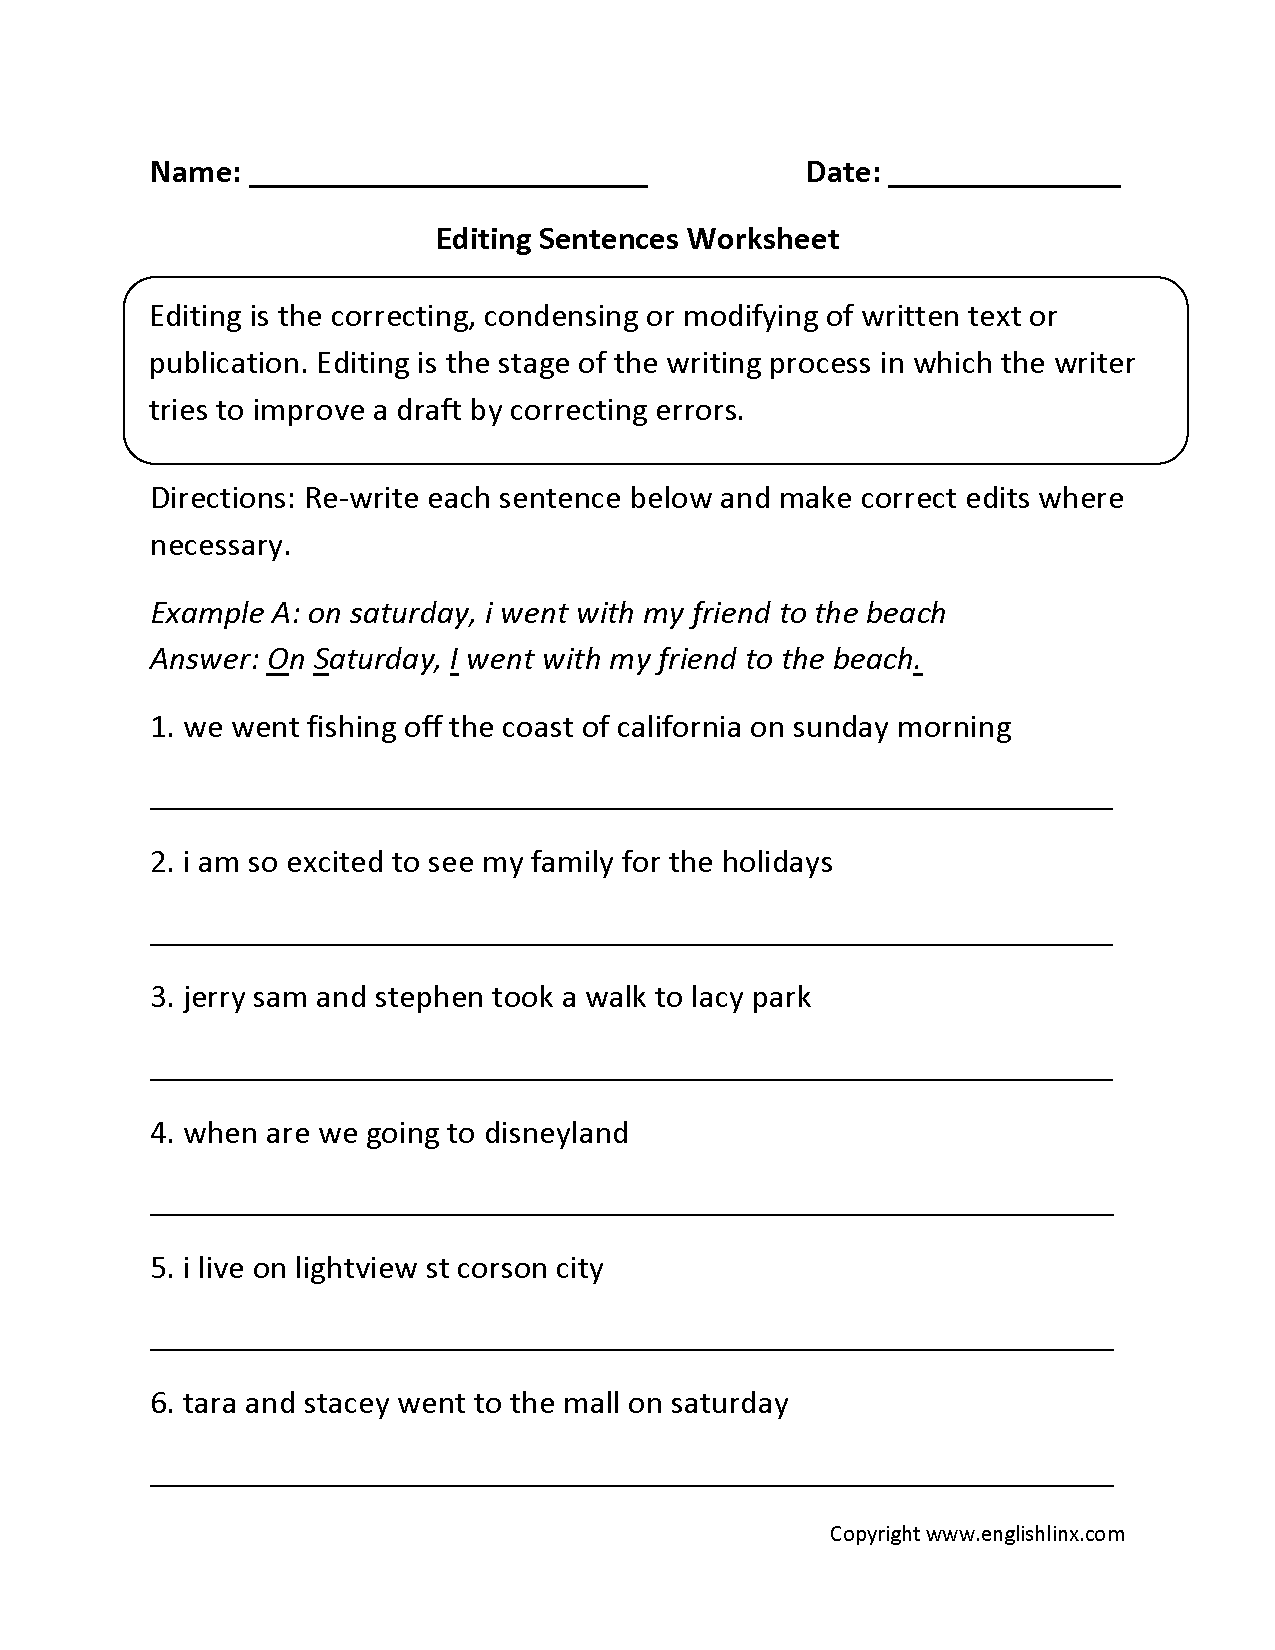 Worksheets 8th Grade Language Arts Worksheets writing worksheets editing worksheets